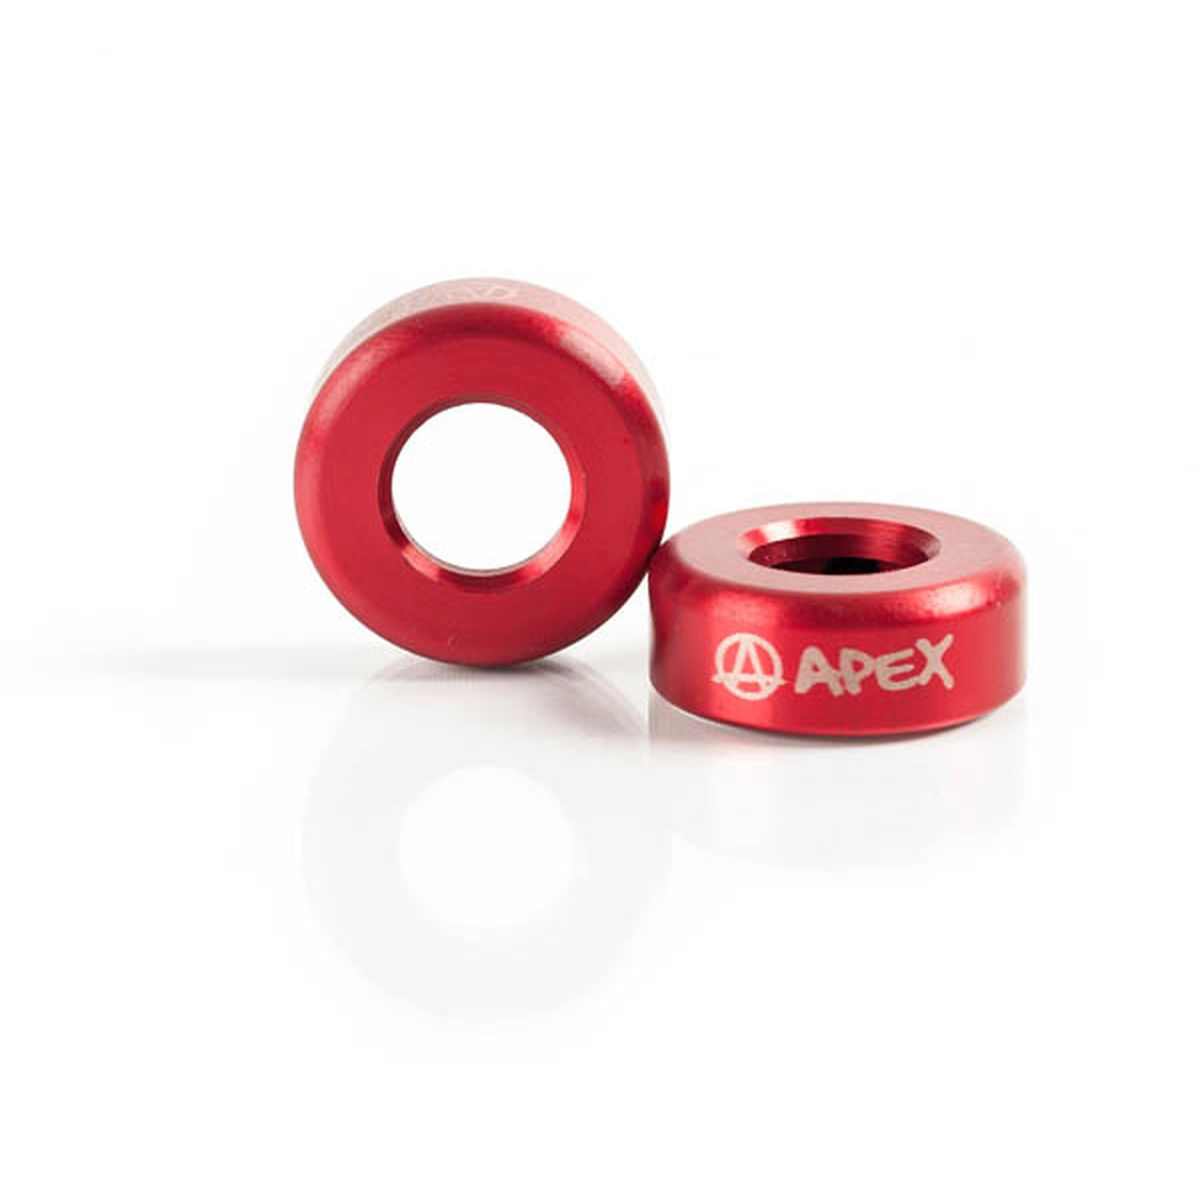 Barendy Apex Red